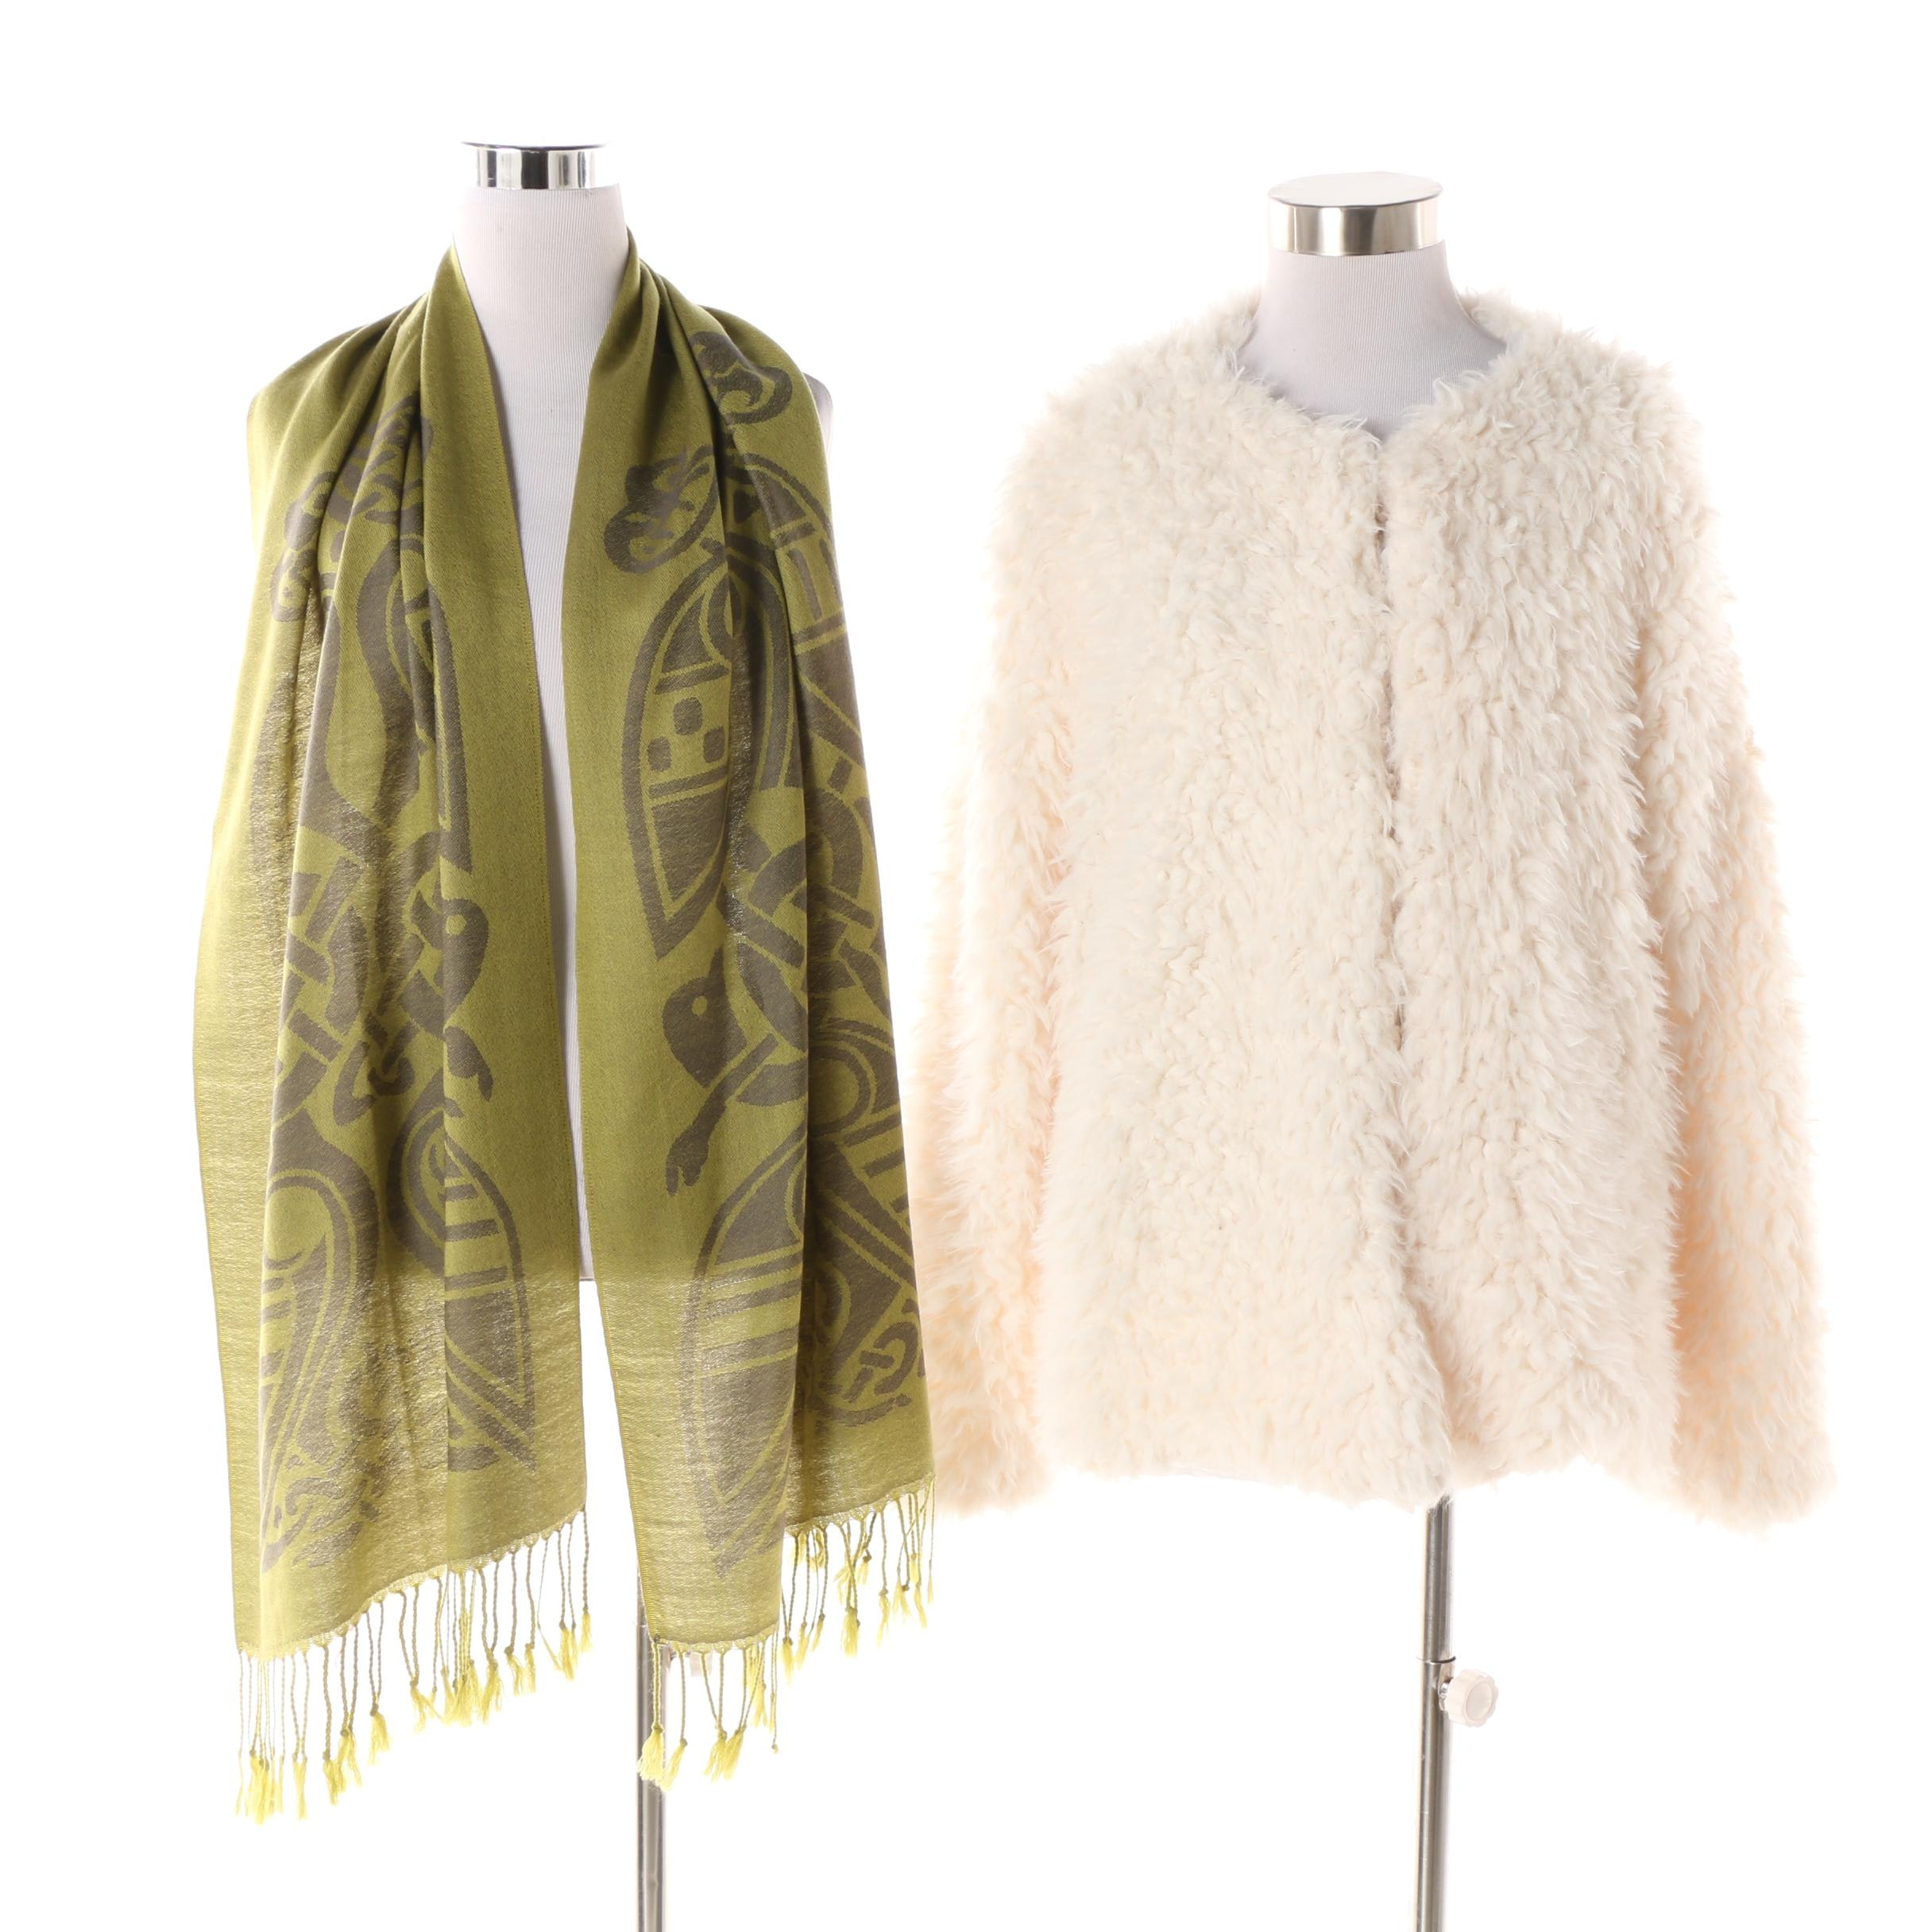 Coco + Carmen Textured Jacket and Patrick Francis Designs Wool Scarf